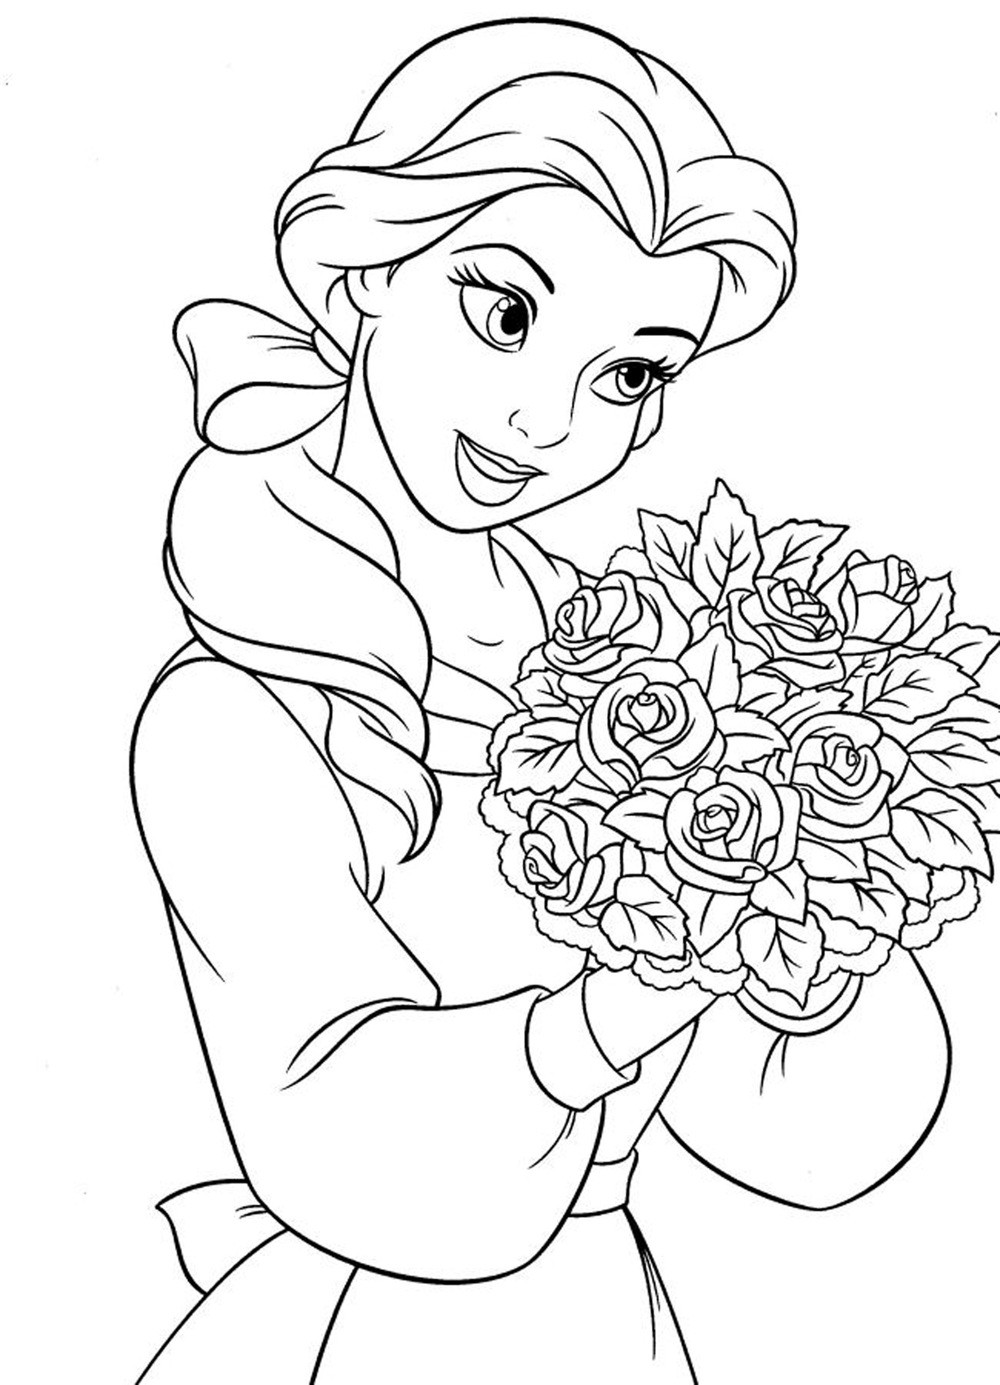 Best ideas about Coloring Pages For Girls Detailed . Save or Pin coloring pages for girls Now.